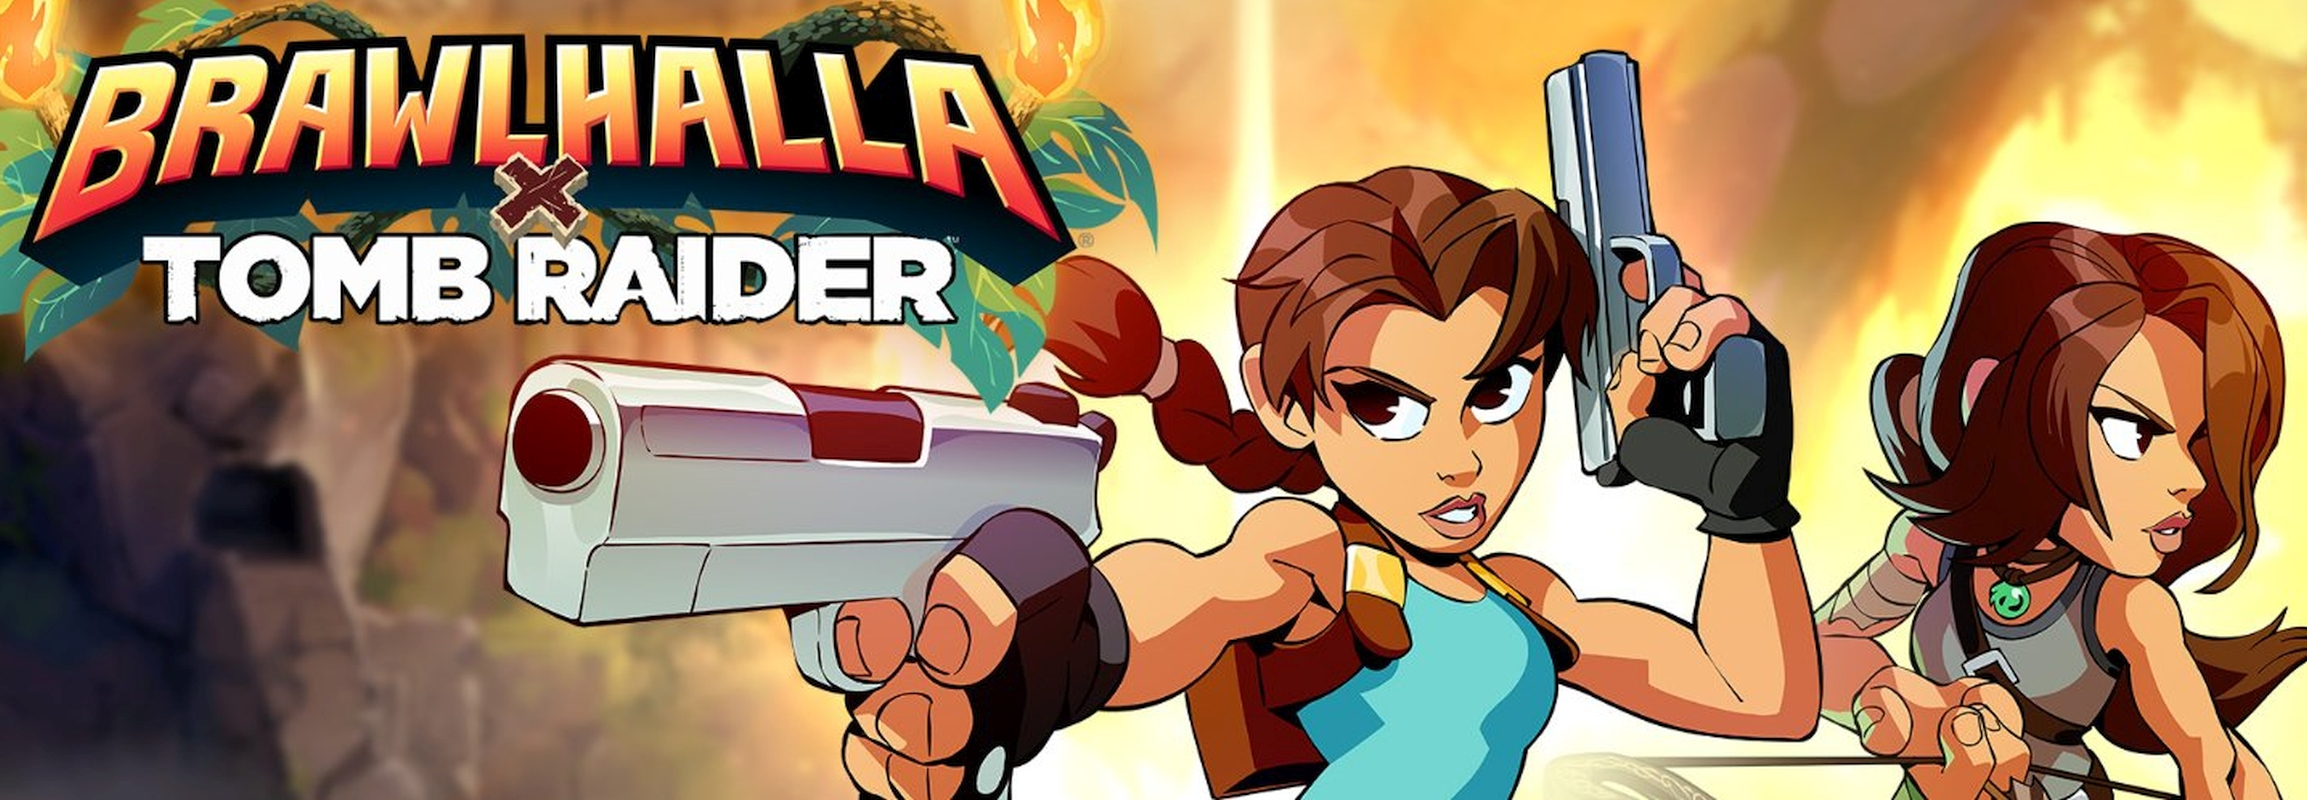 Tomb Raider Epic Crossover Event Adds Lara Croft To Brawlhalla